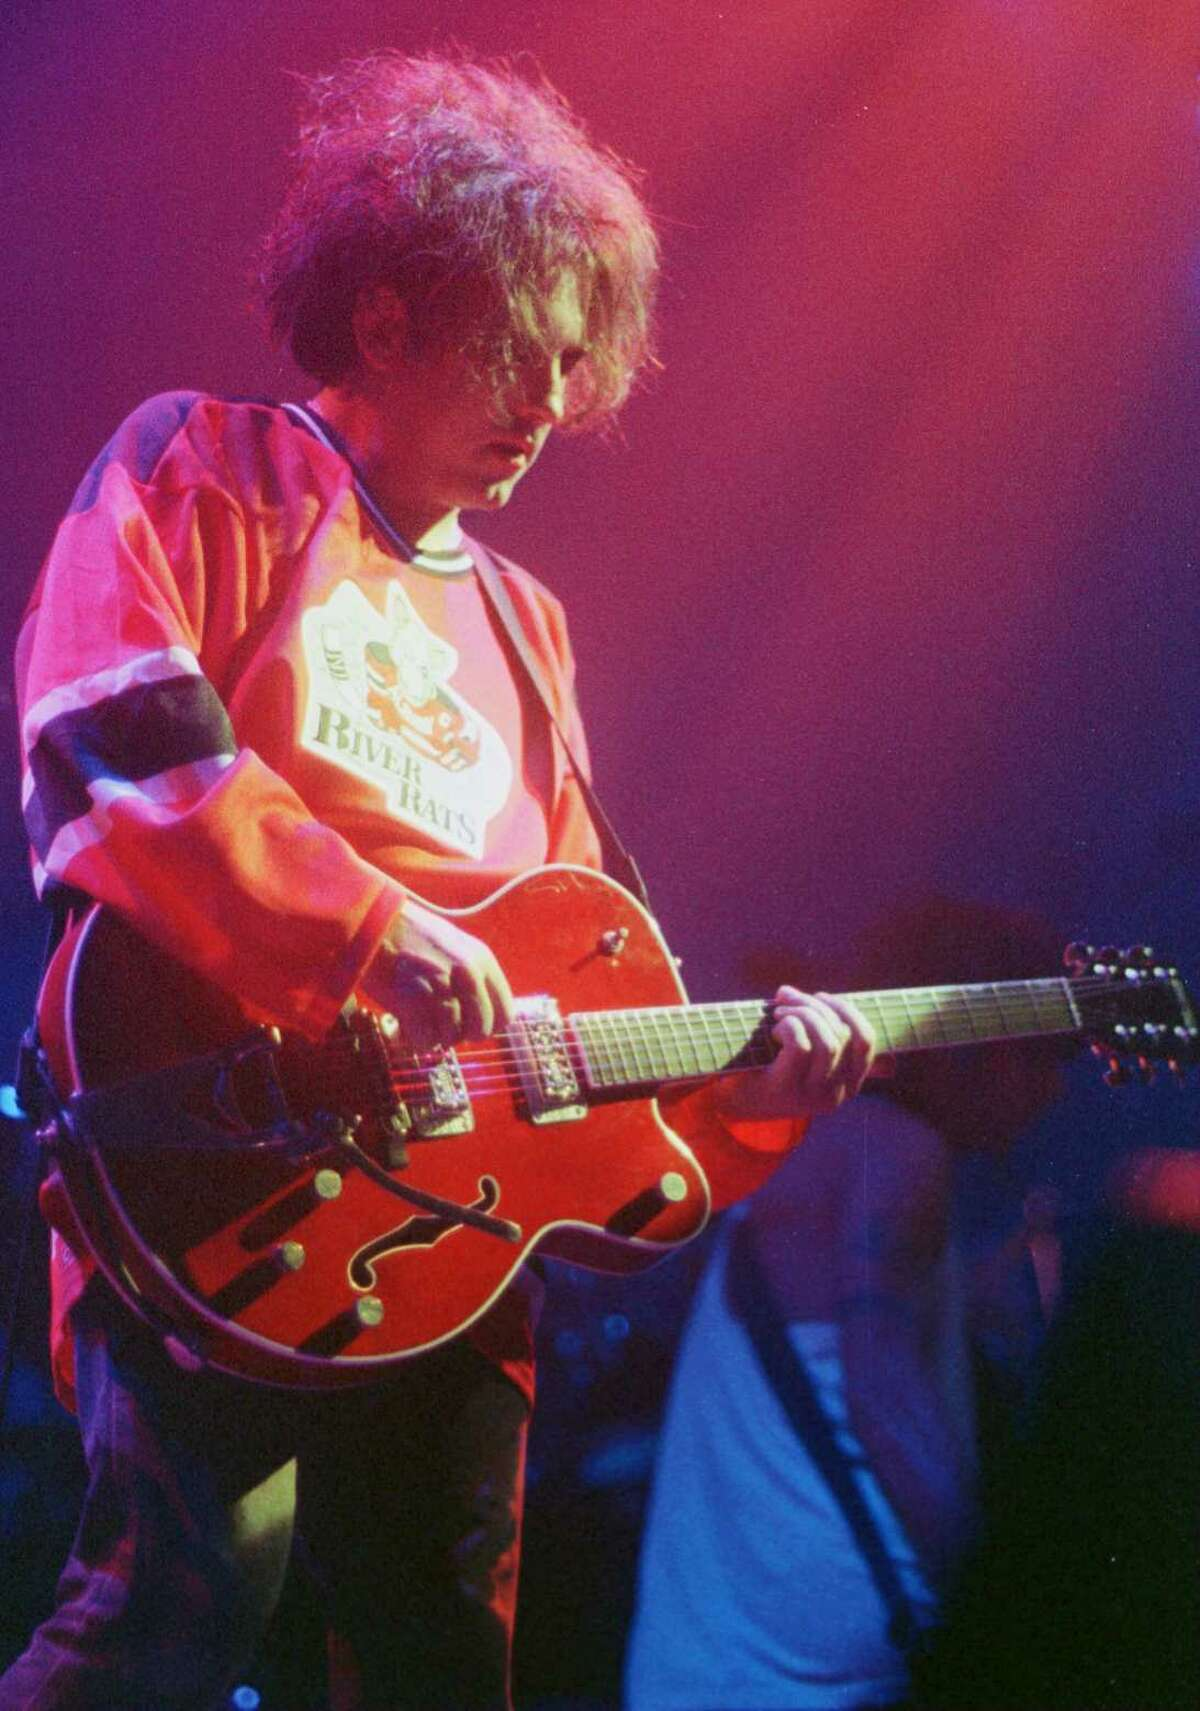 THE CURE, KNICKERBOCKER ARENA, 9/11/96 (Times Union Photo by TOM LAPOINT)